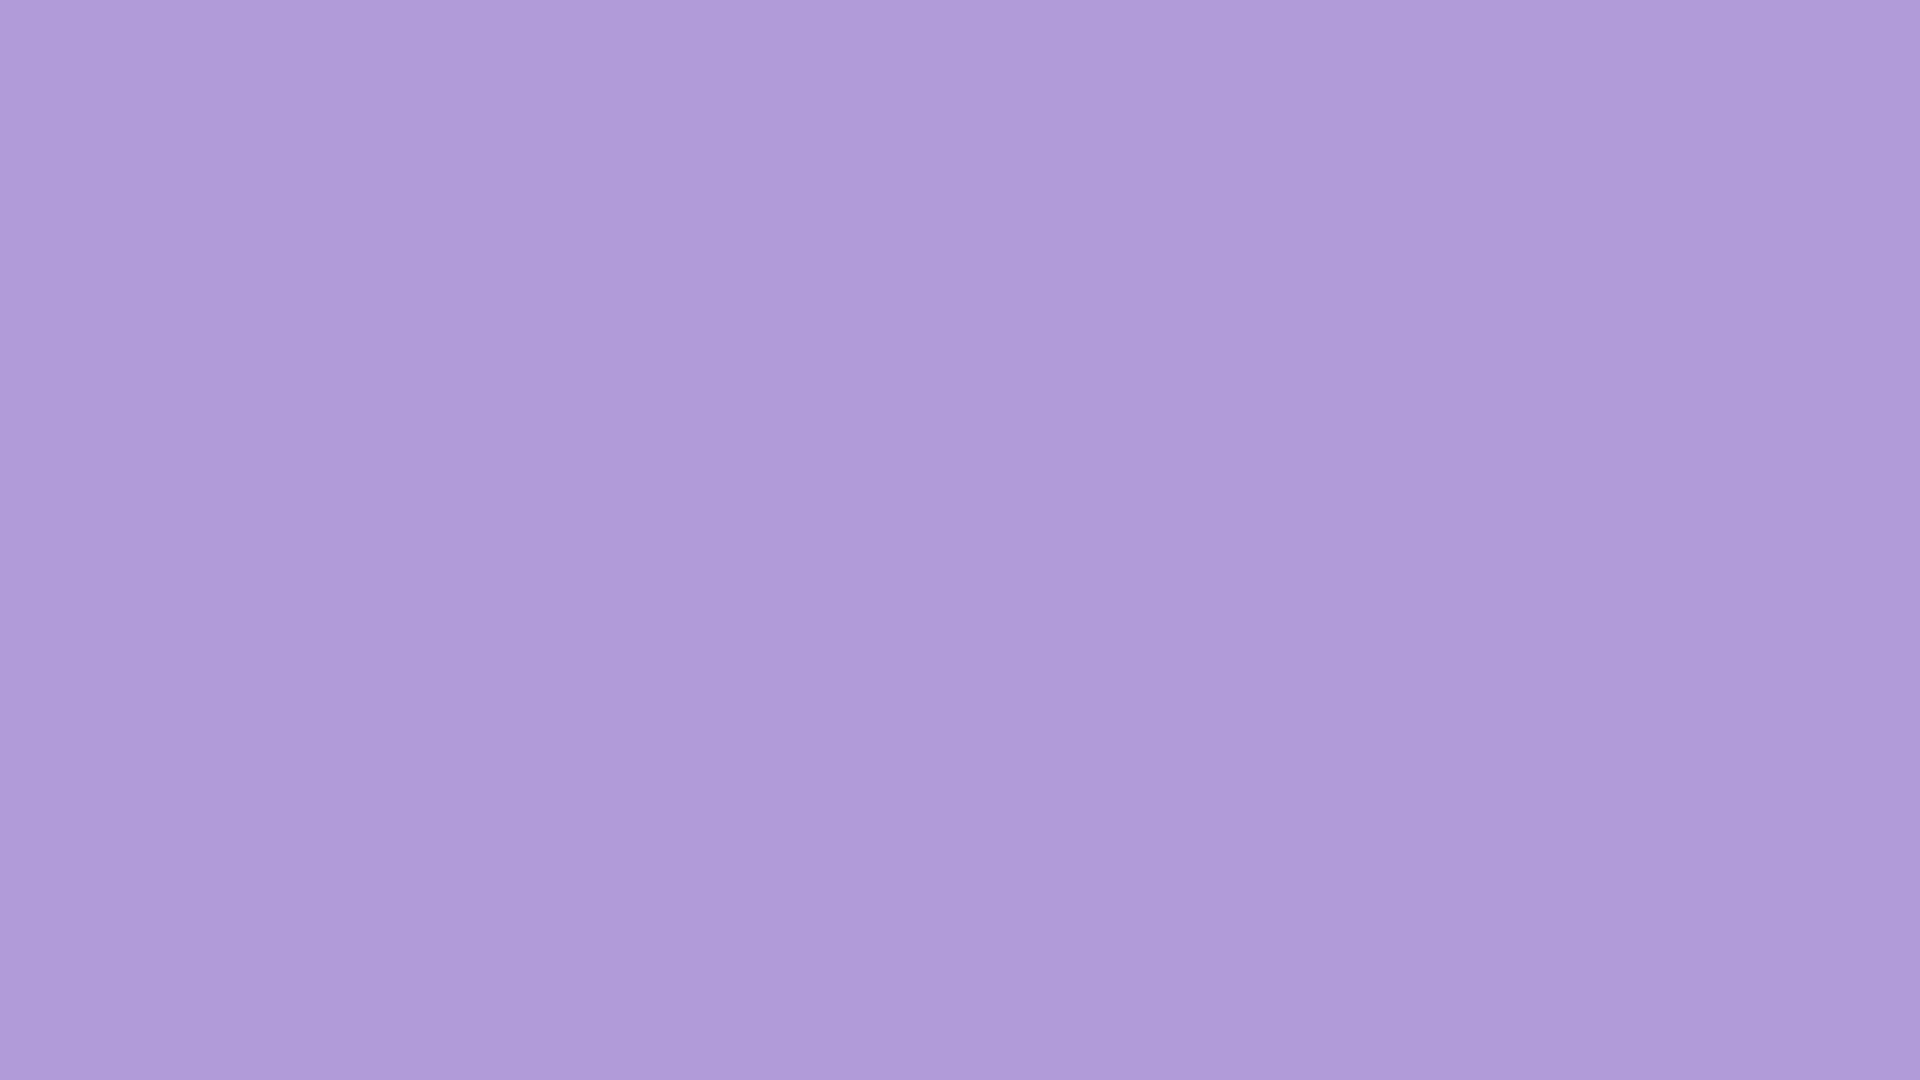 1920x1080 Light Pastel Purple Solid Color Background